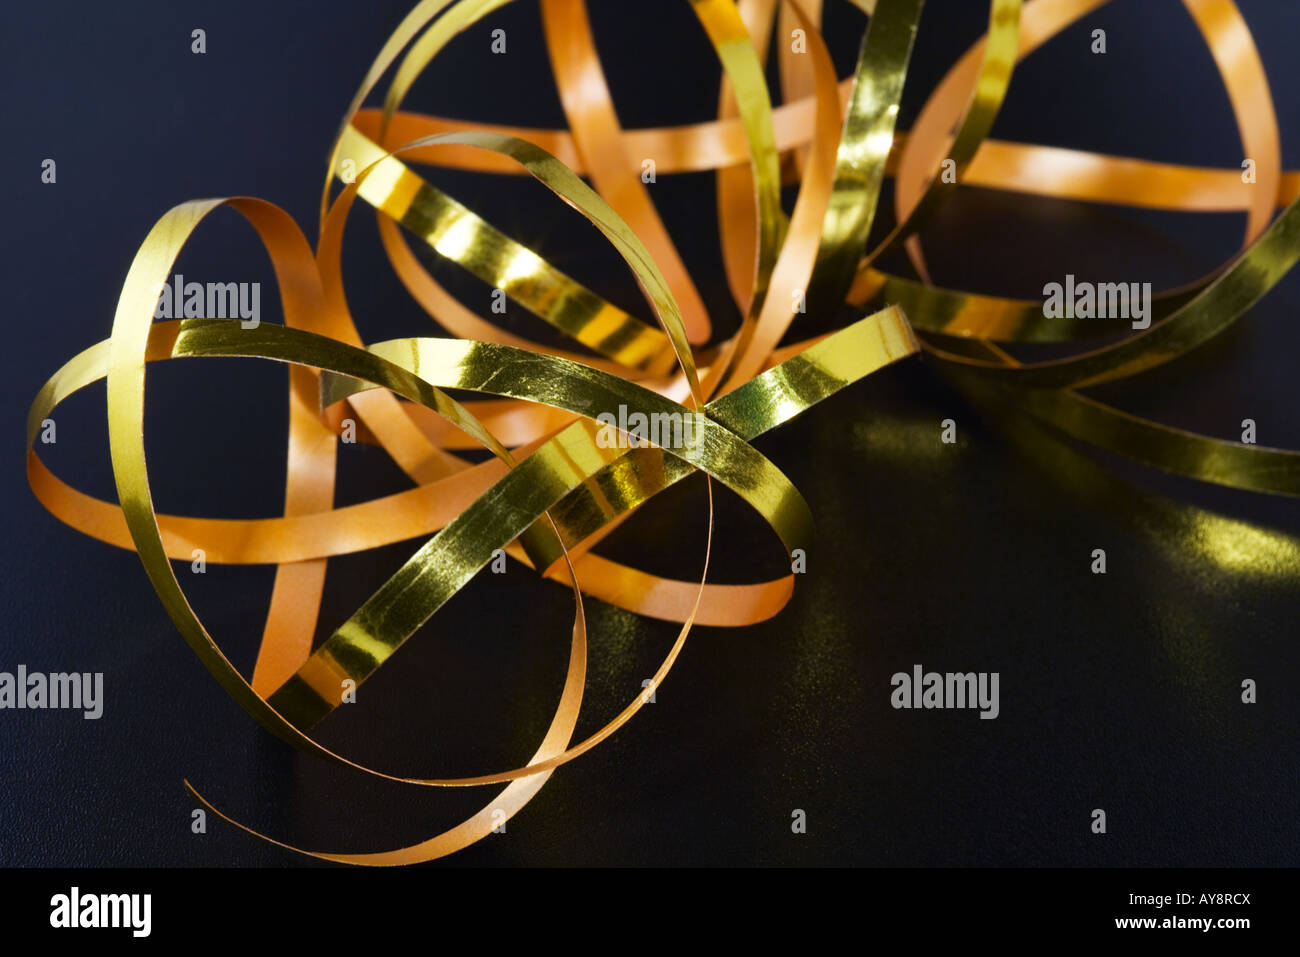 Gold-colored gift-wrap ribbon, close-up - Stock Image